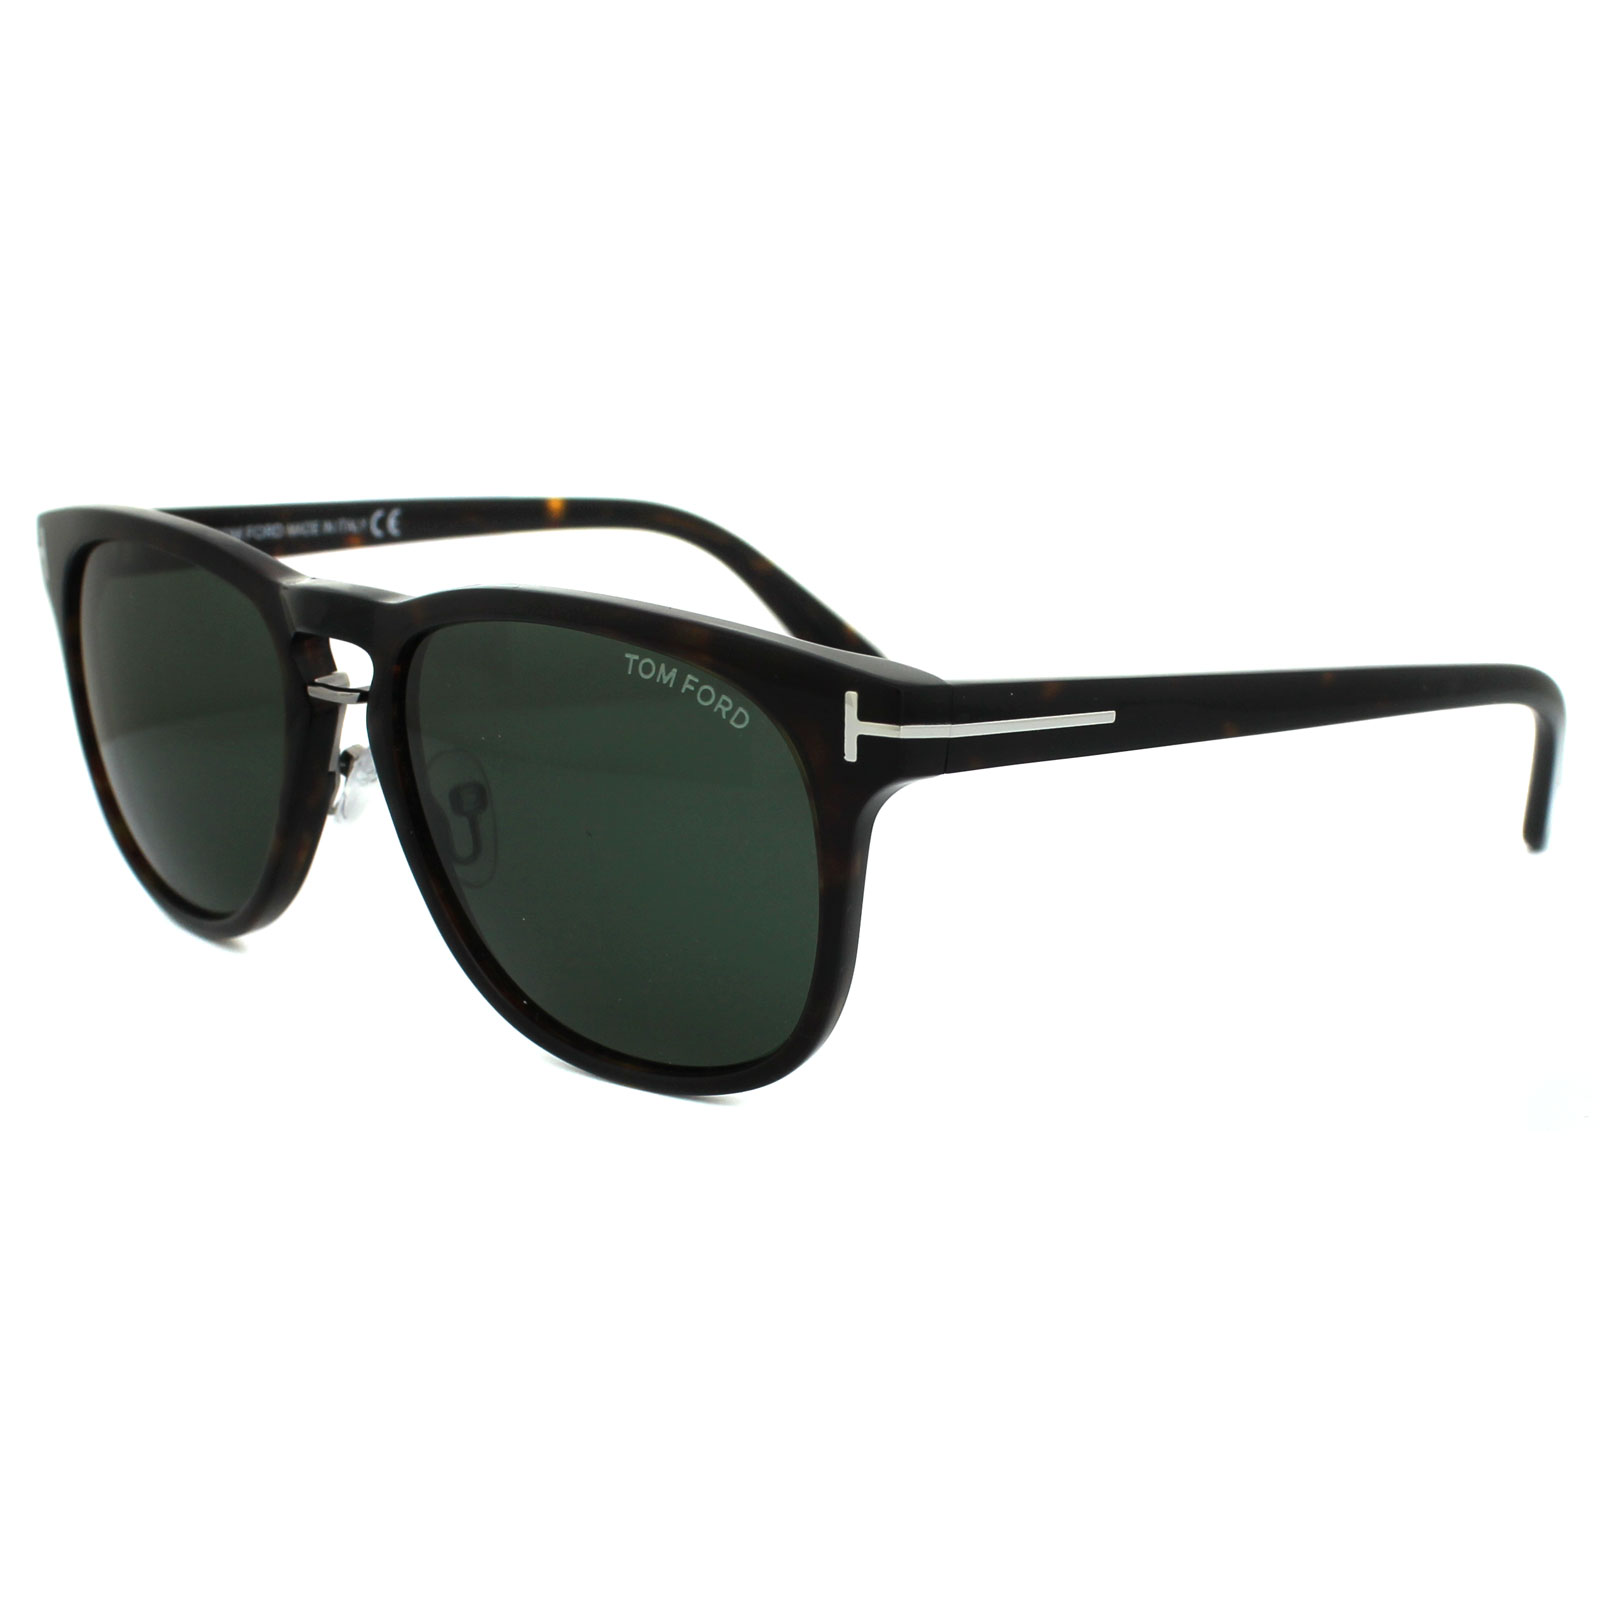 c3b2c3e97fd Details about Tom Ford Sunglasses 0346 Franklin 56N Havana Green